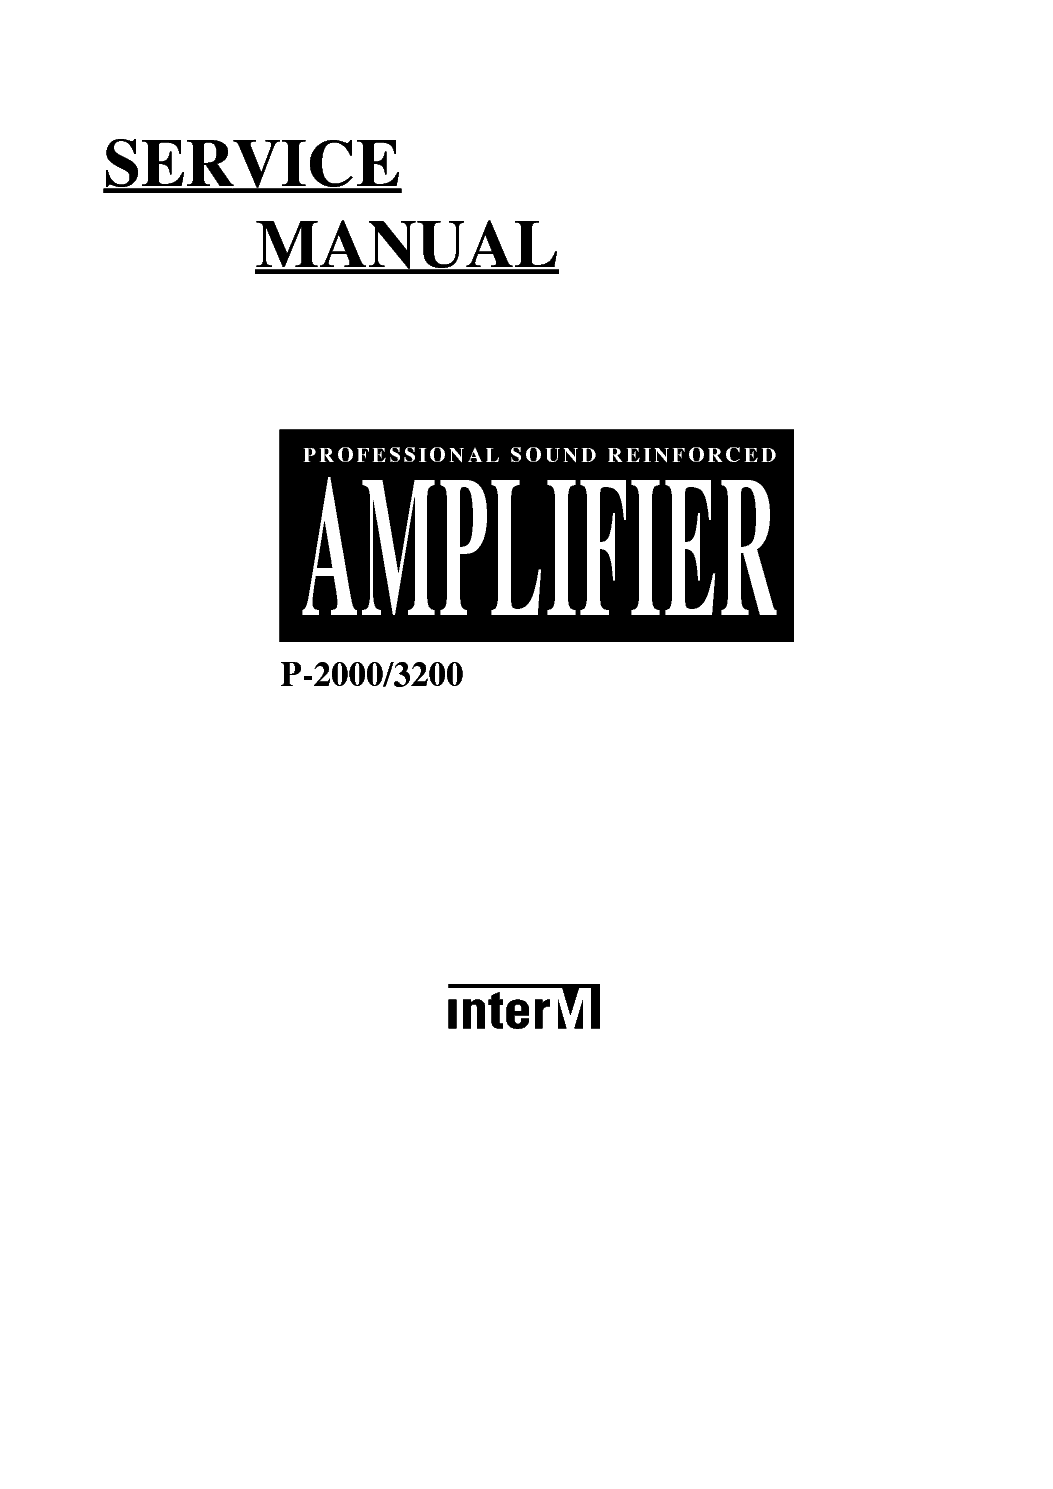 Interm M 500 700 Parts Sch Service Manual Download Schematics Eeprom Repair Info For